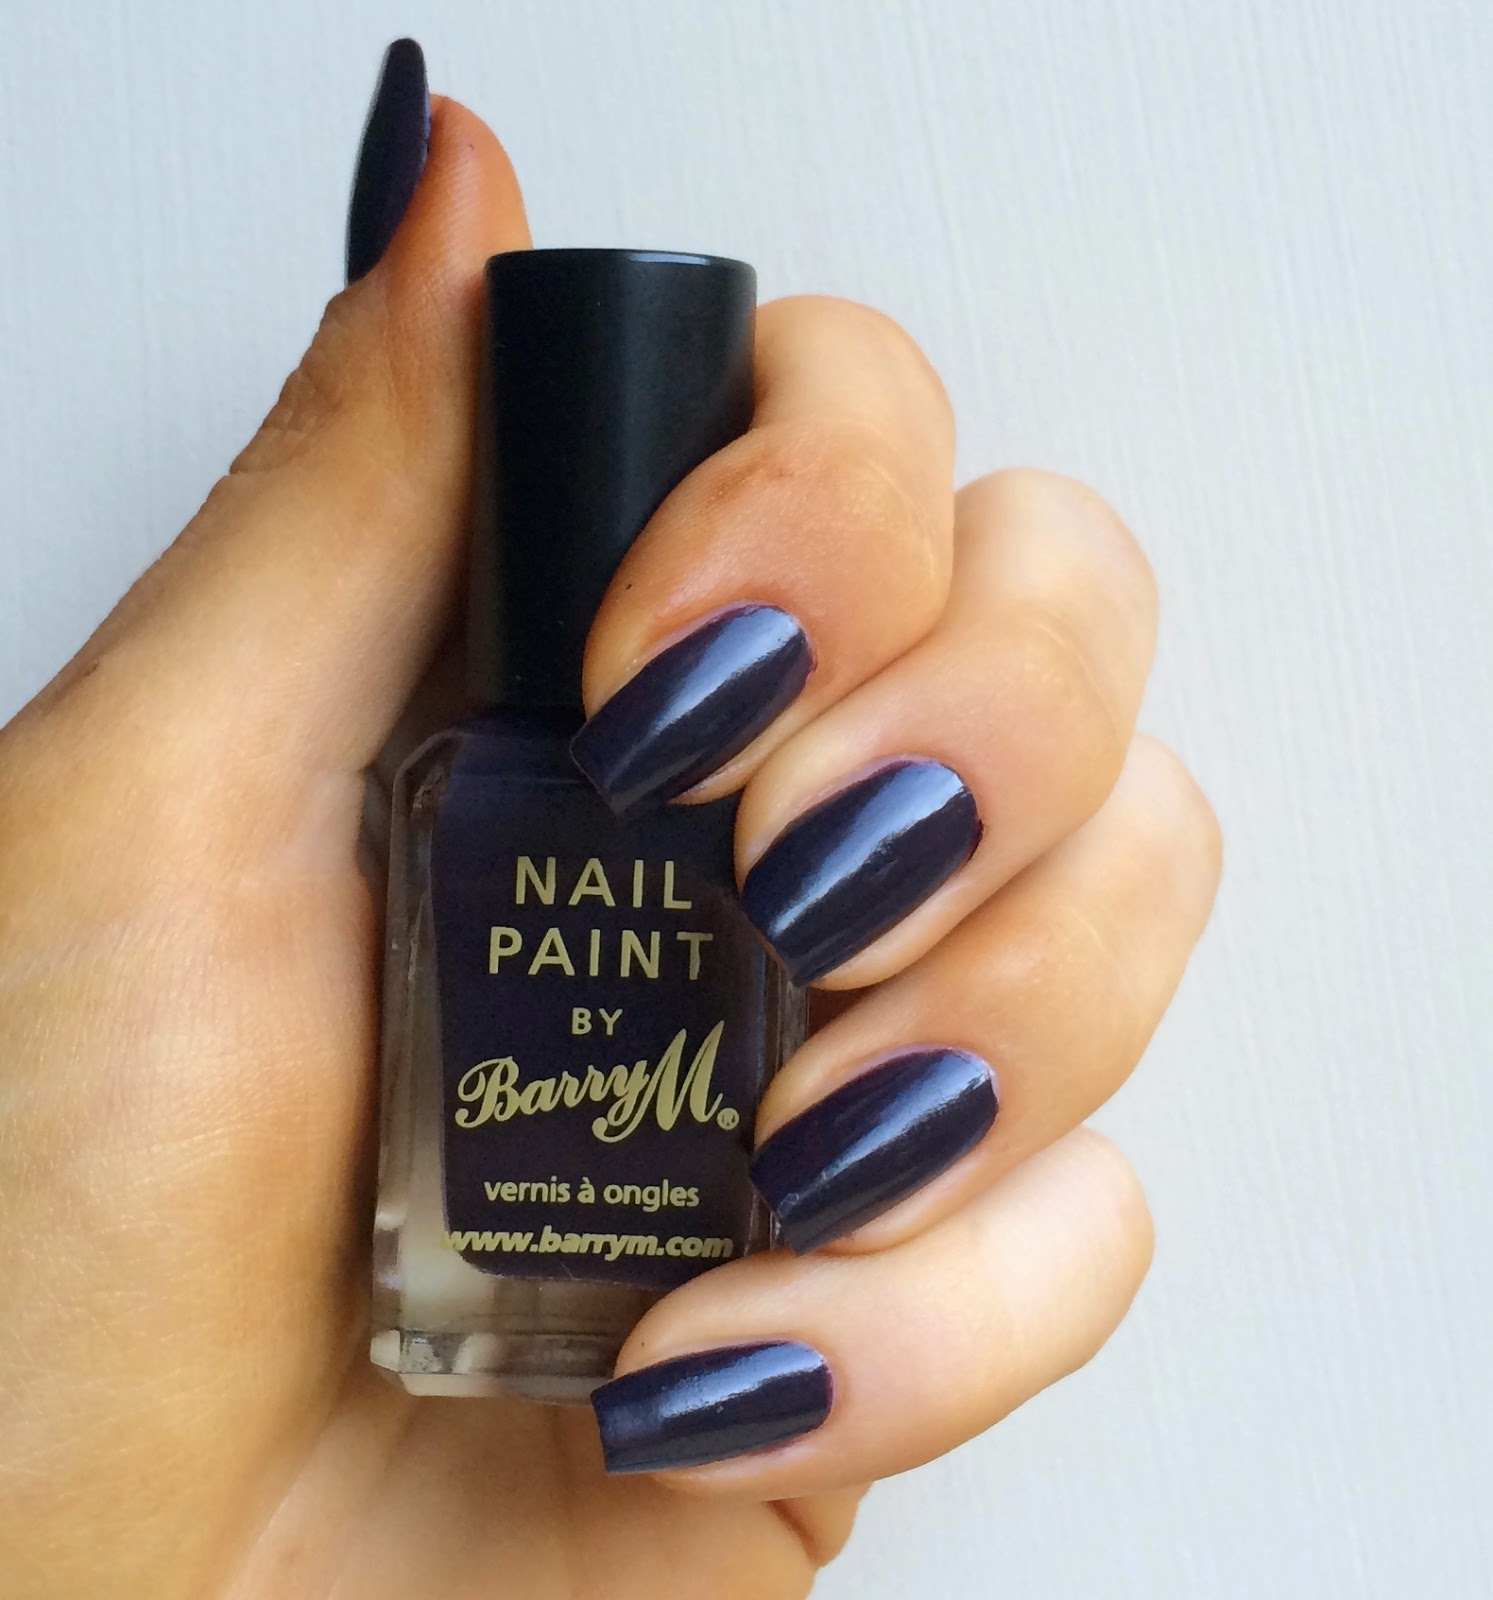 barry-m-nail-paint-nightshade-review-on-nails